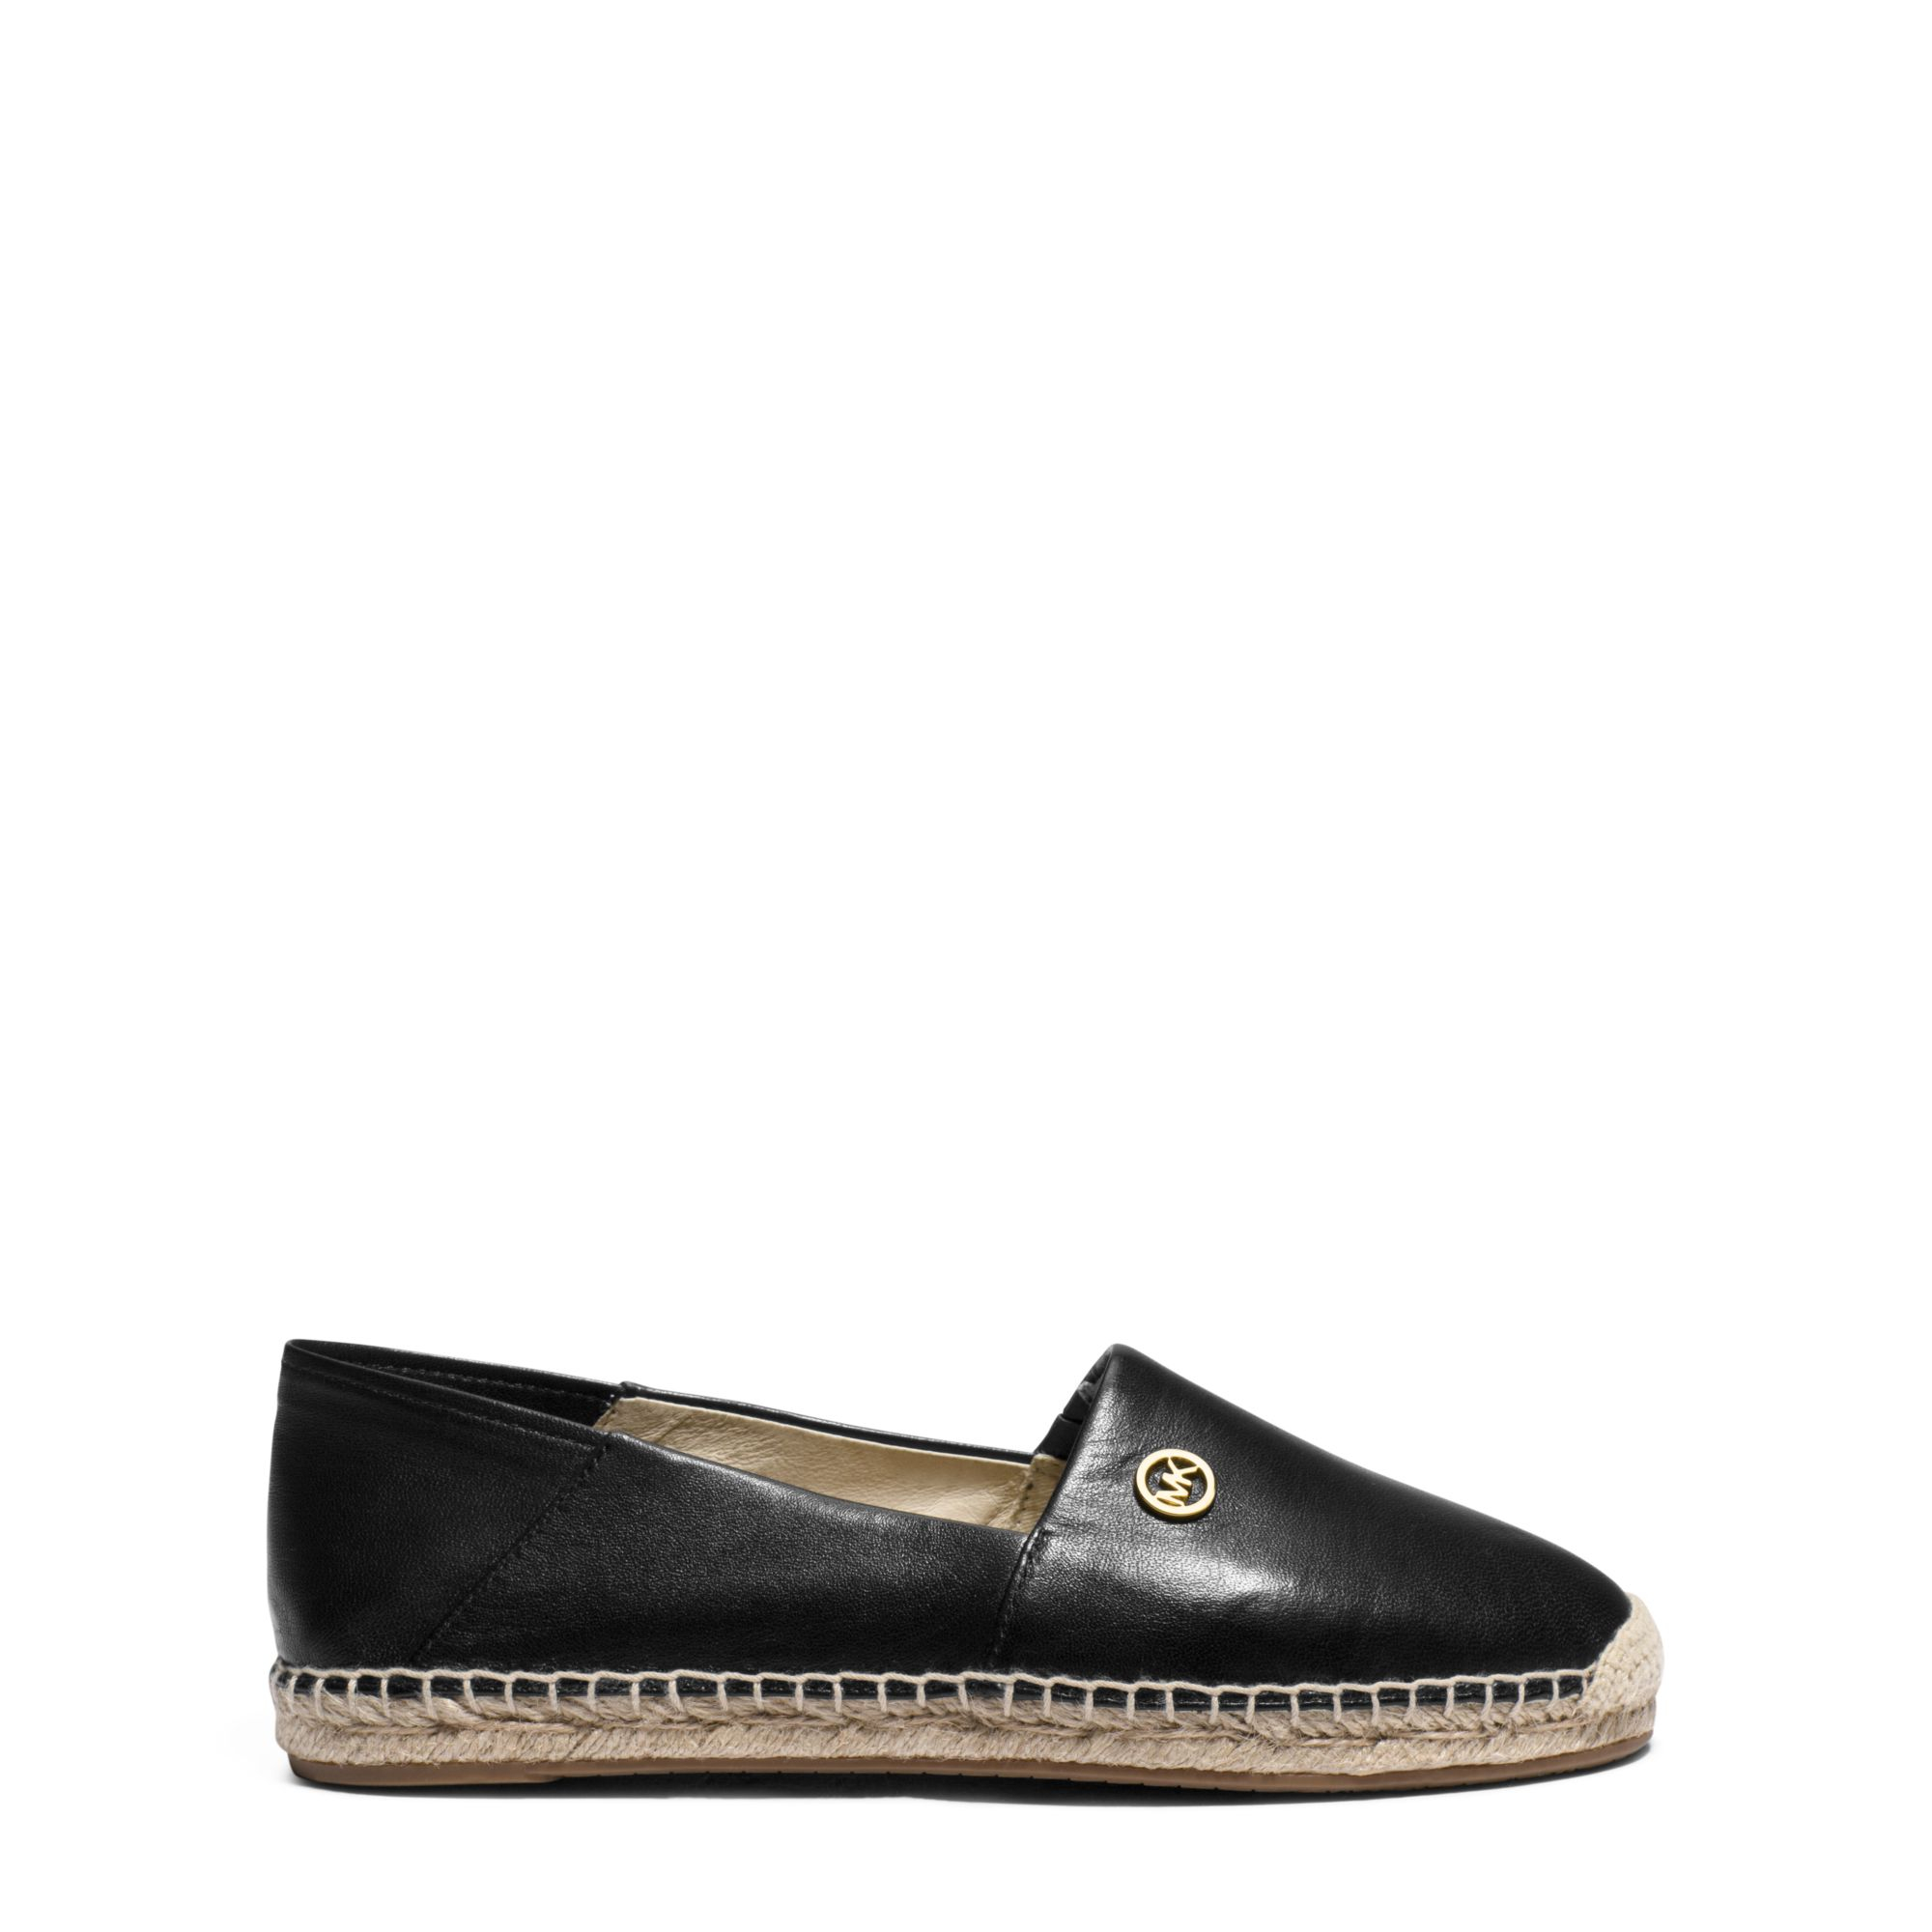 michael kors kendrick leather espadrille in black lyst. Black Bedroom Furniture Sets. Home Design Ideas